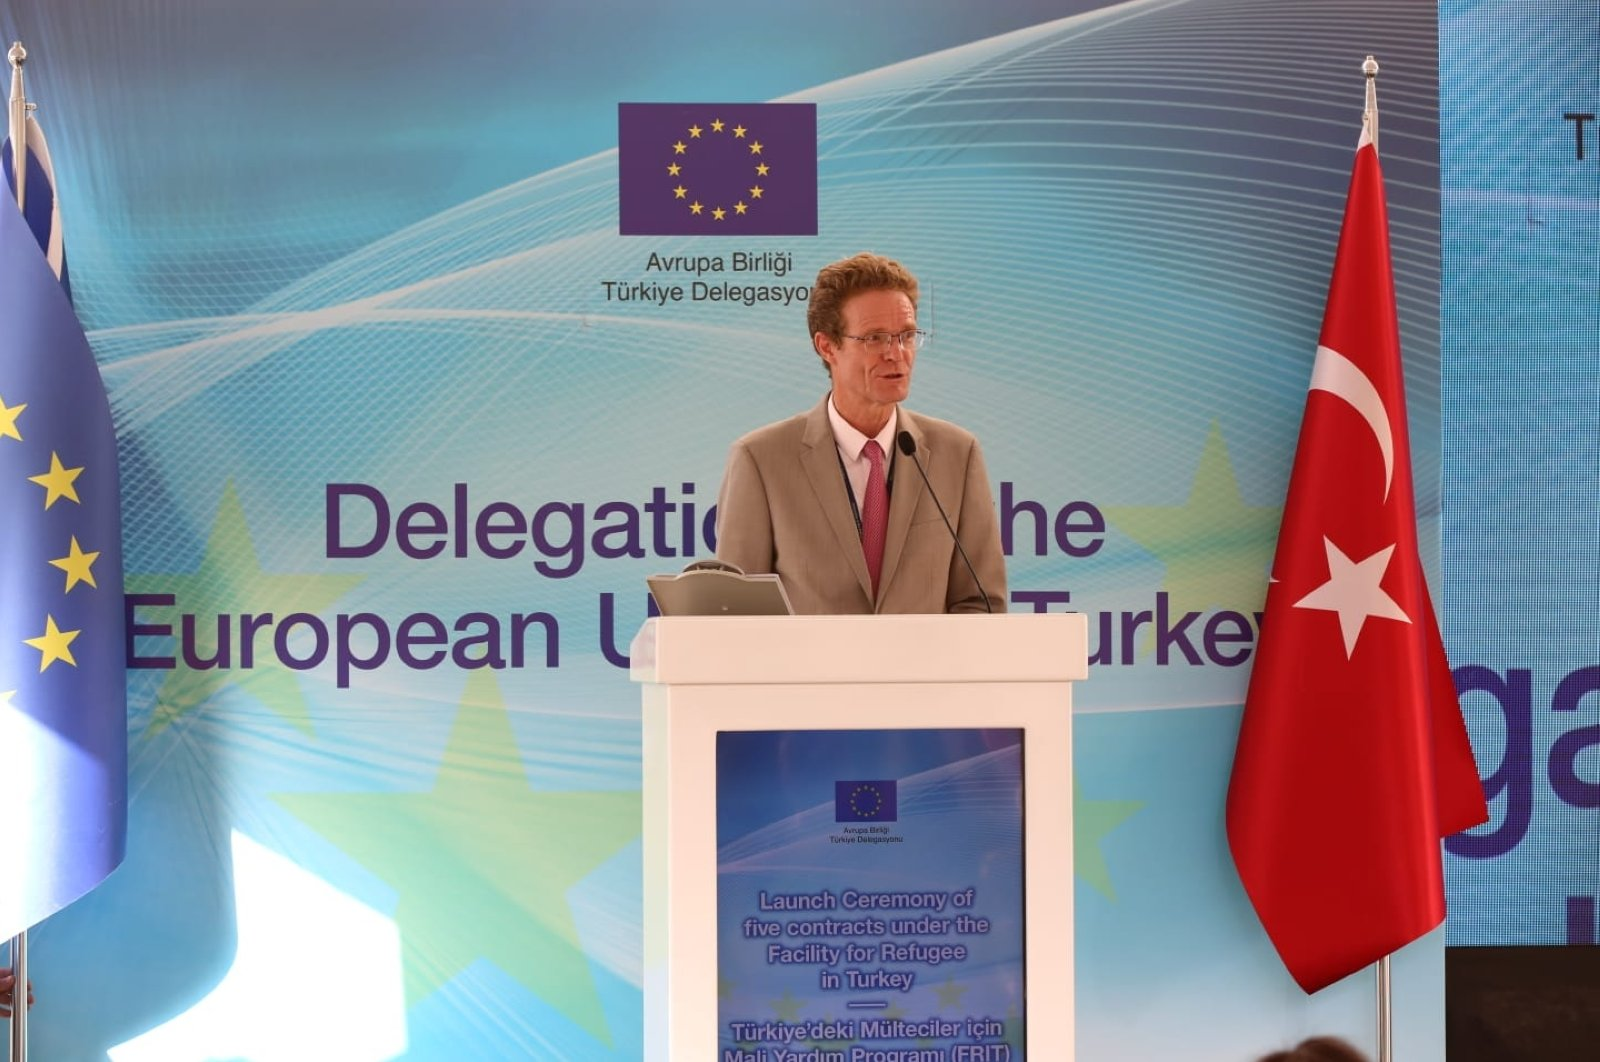 Head of the EU Delegation to Turkey Ambassador Nikolaus Meyer-Landrut announced five new projects for refugees in Turkey, Sept. 29, 2020 (Courtesy of the EU delegation in Turkey)